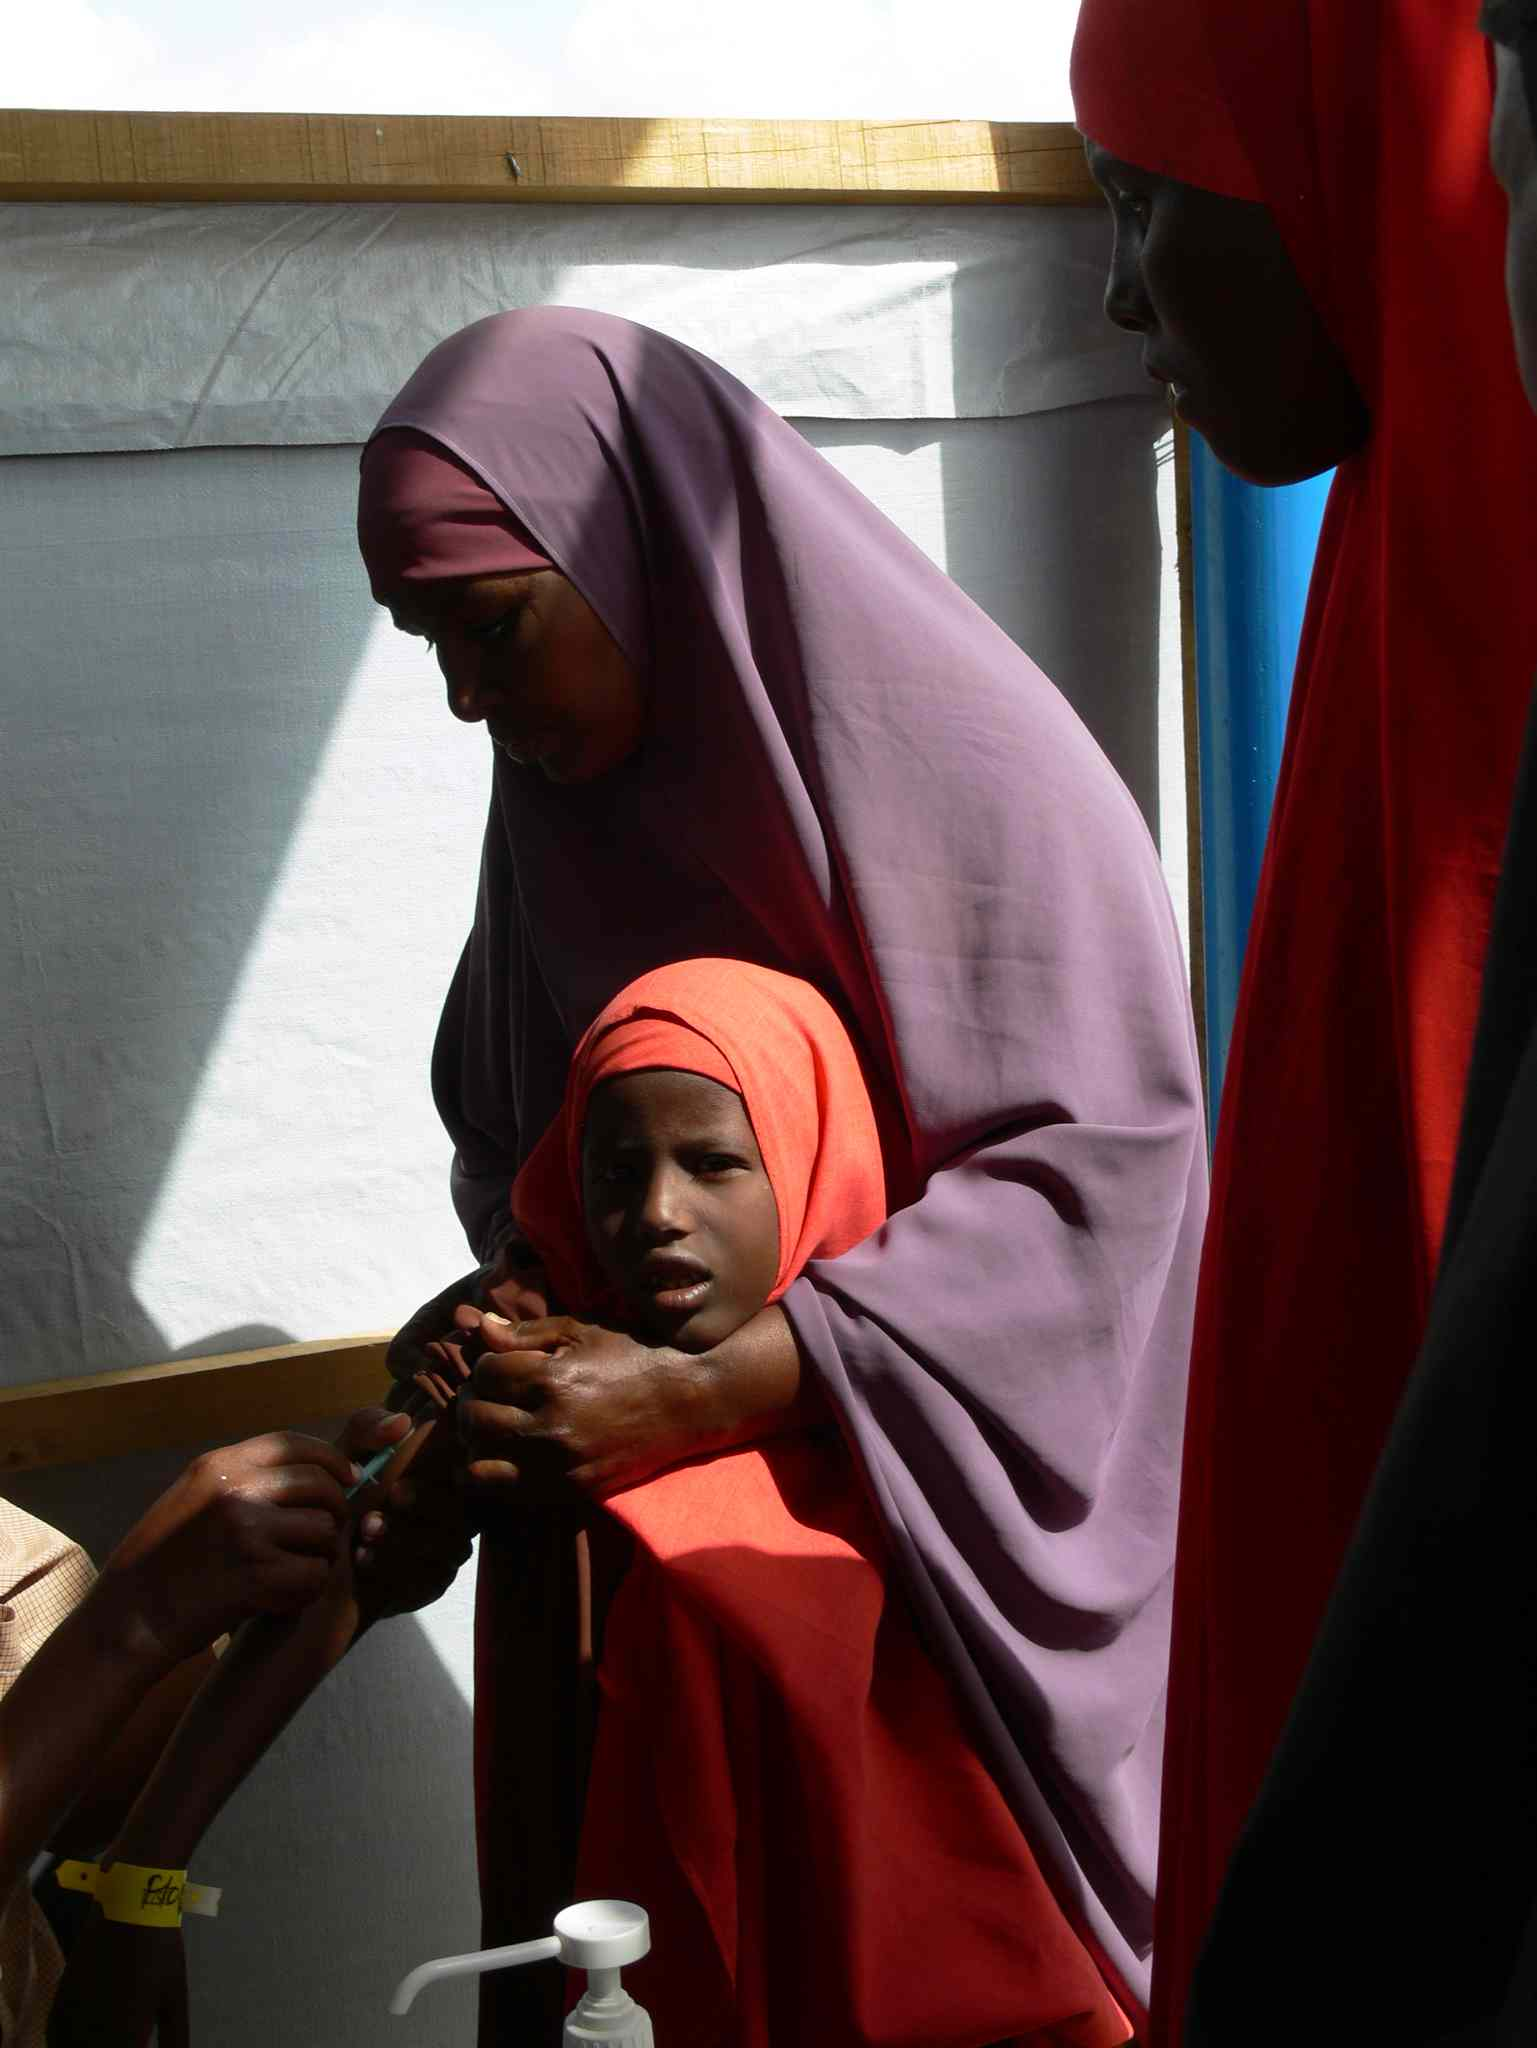 Children are immunized as one of the first steps in the registration process for refugees. Over two days in late May, more than 800 new refugees were registered at the UNHCR registration centre at Ifo 2 camp in Dadaab.